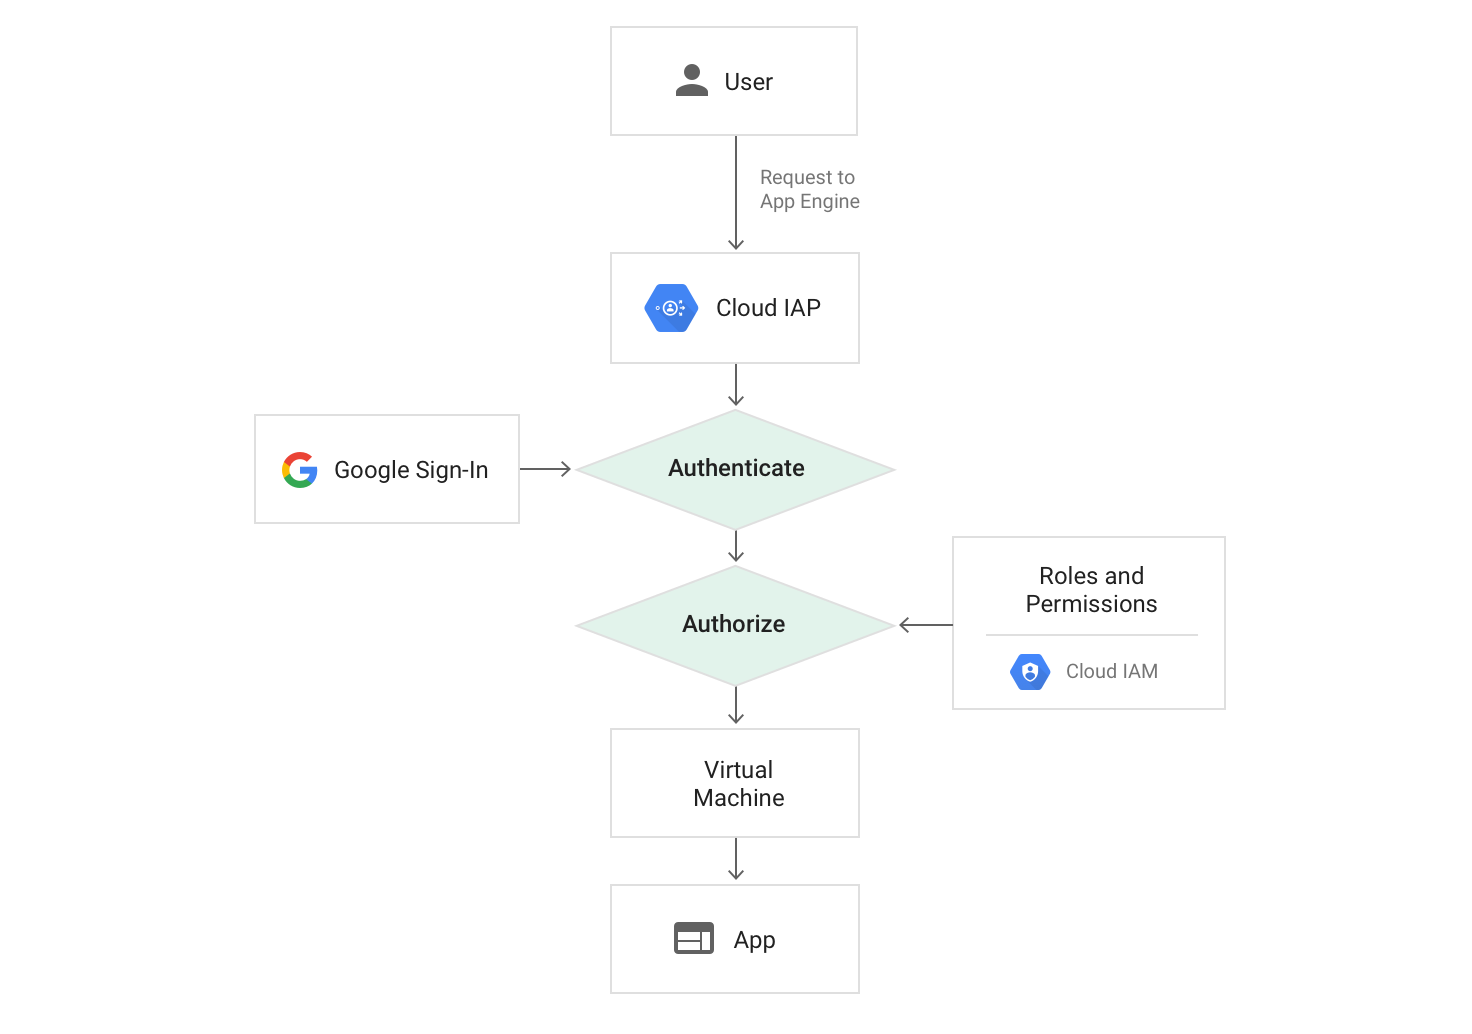 diagram of request path to App Engine when using Cloud IAP